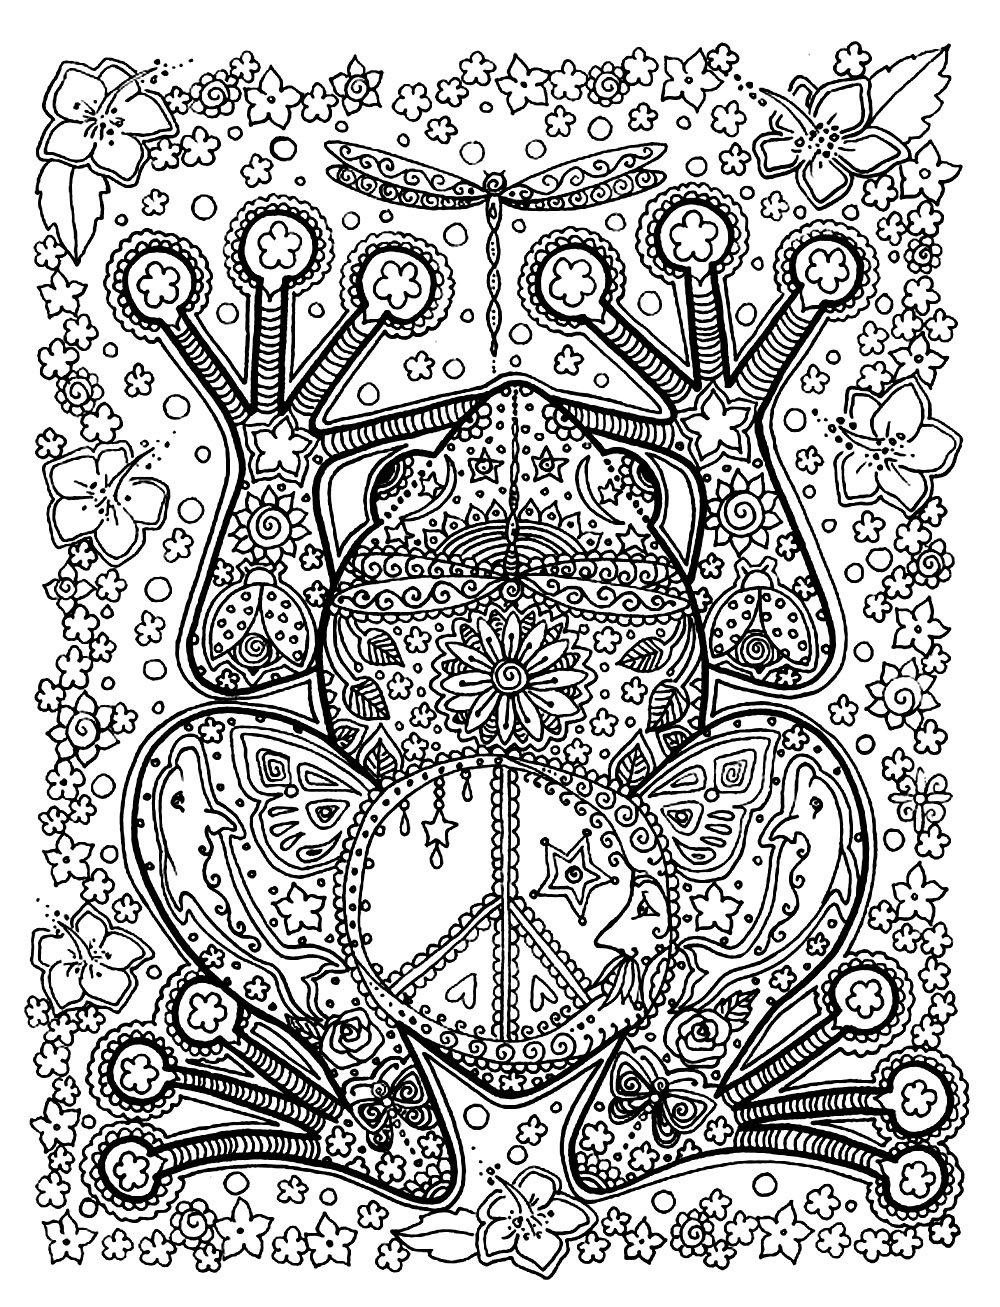 Animals coloring pages for adults coloring adult Giant coloring books for adults